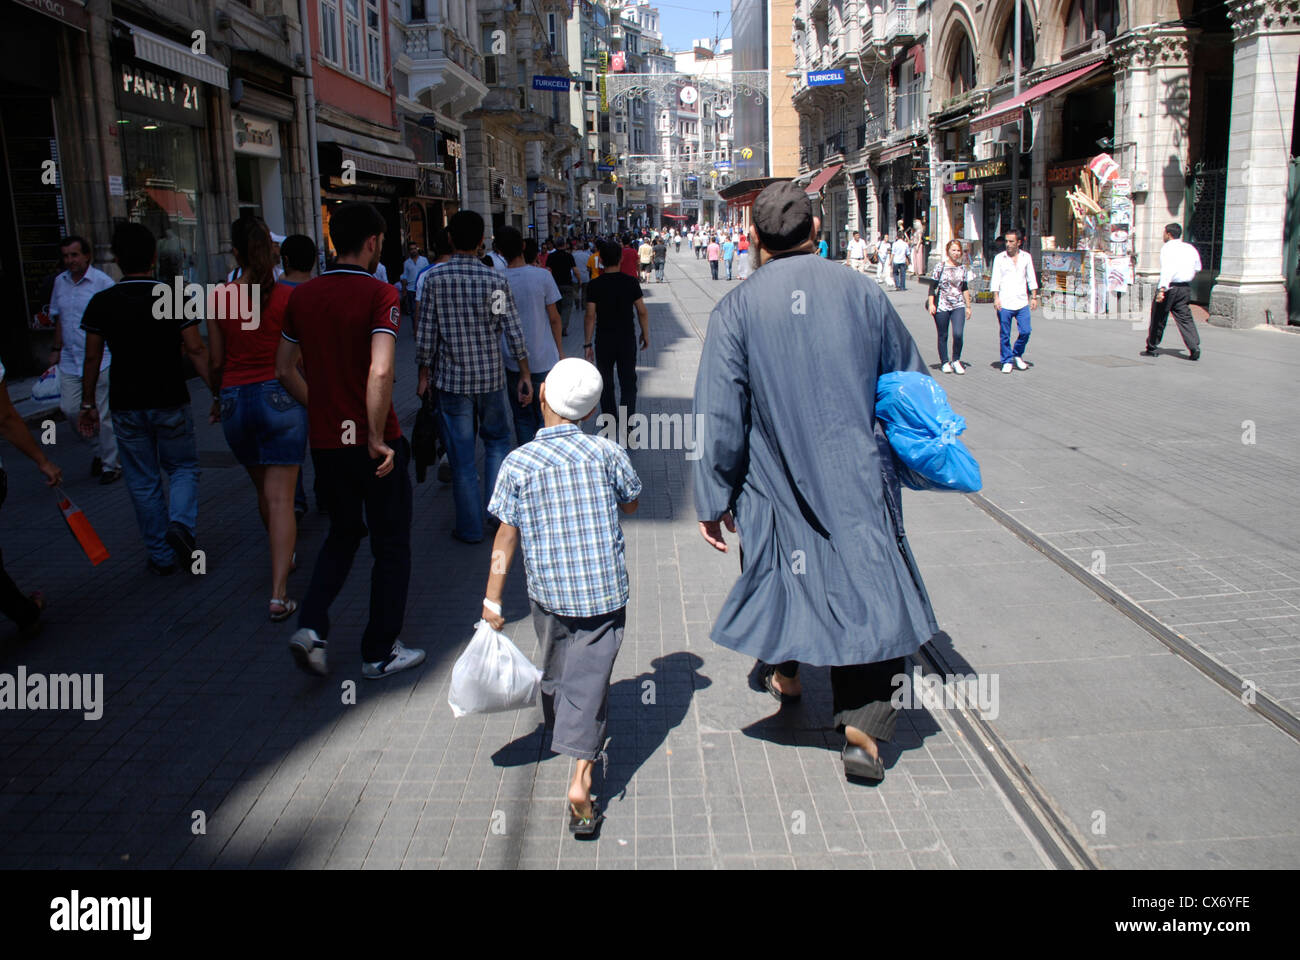 A father and son walk together down Istanbul's most famous shopping street Istiklal Caddessi. Picture by Adam - Stock Image